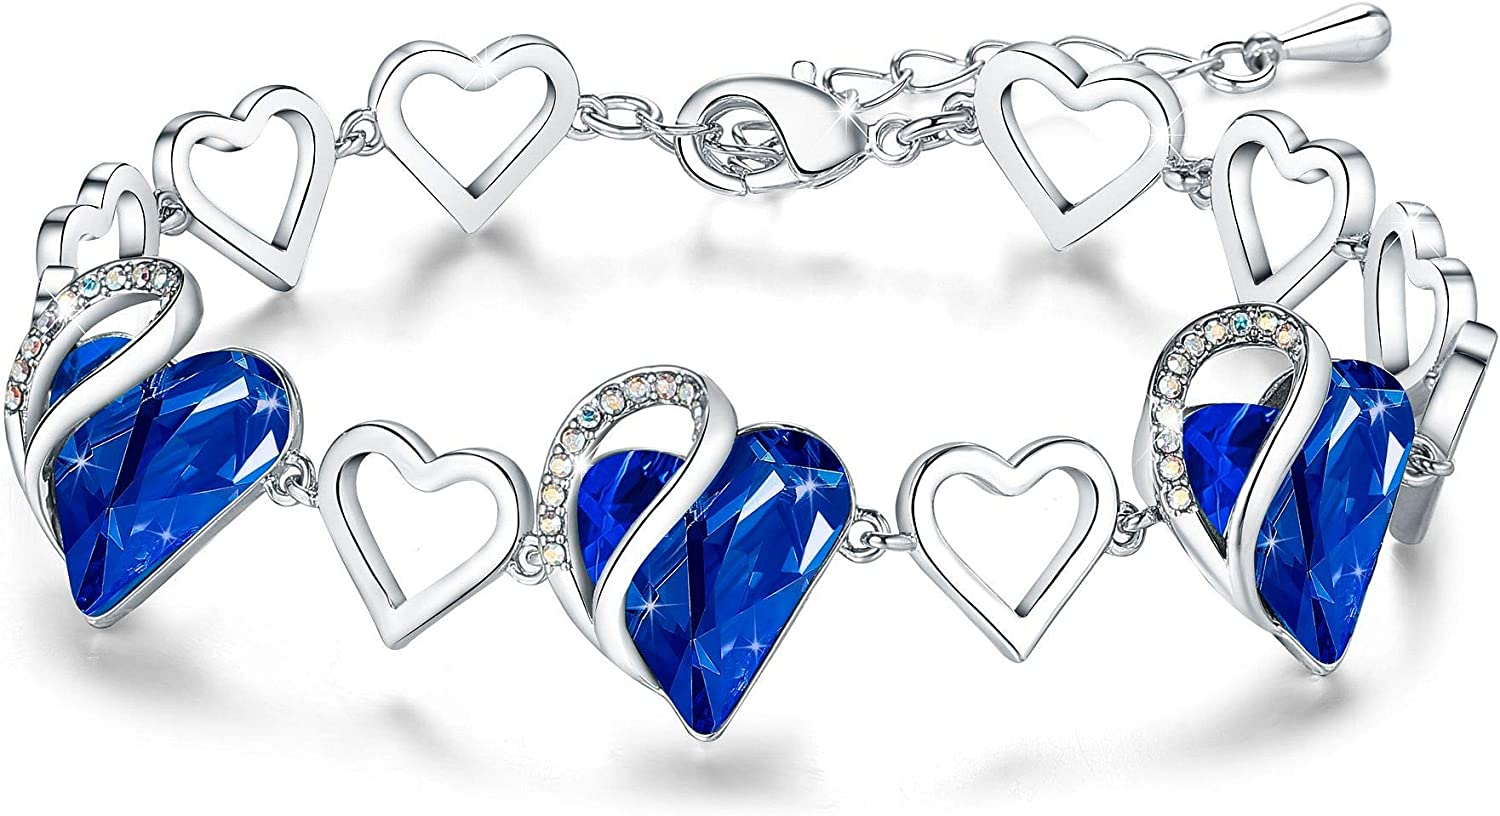 "Leafael Infinity Love Silvertone with Birthstone Crystal Women's Gifts Heart Bracelet, 7"" with 2"" Extender"